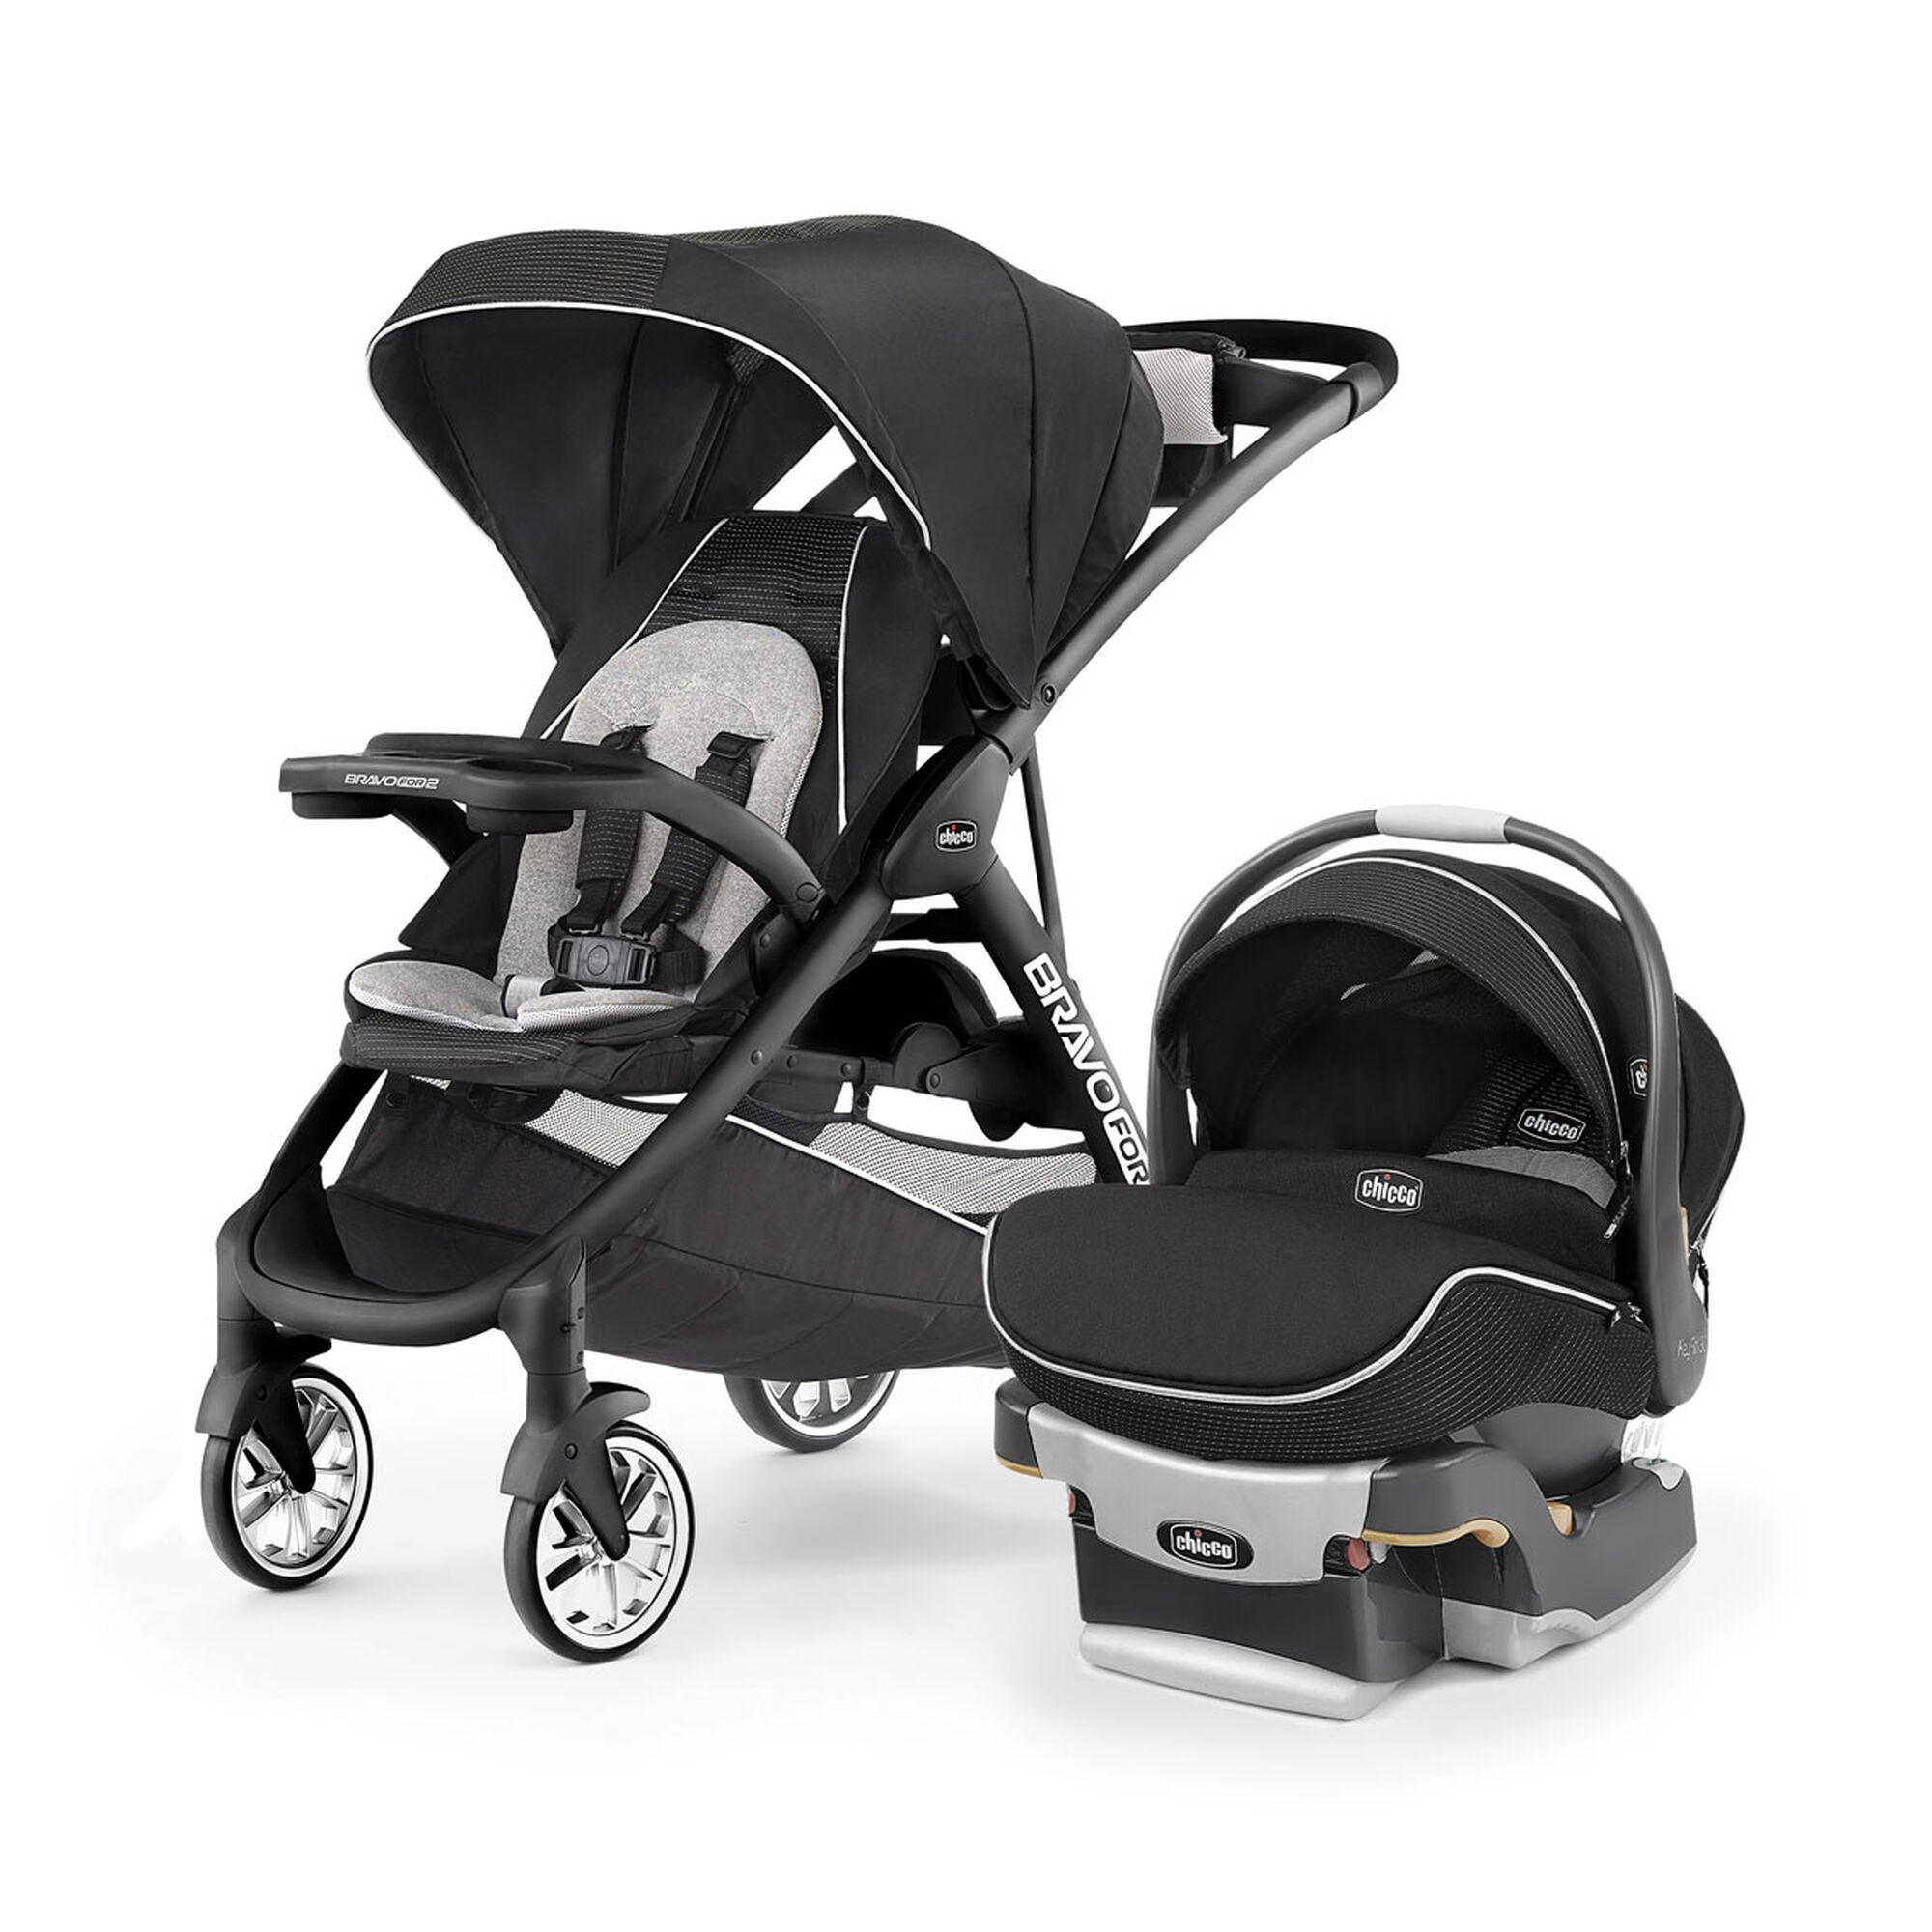 chicco keyfit zip baby car seat chicco chicco keyfit 30 zip infant car seat singapore chico 30. Black Bedroom Furniture Sets. Home Design Ideas